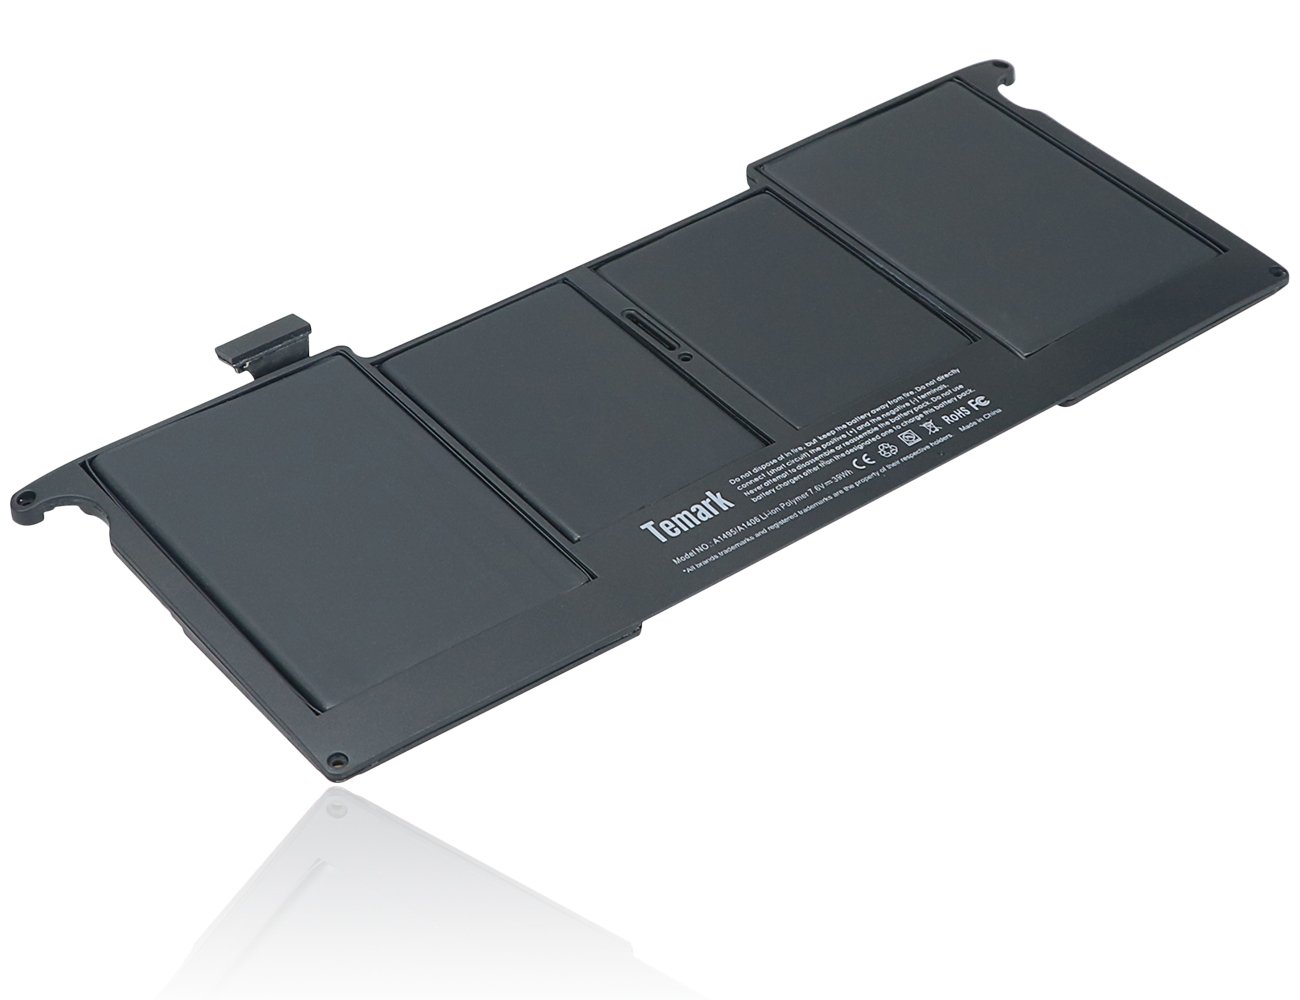 Temark New A1495 A1406 Laptop Battery for MacBook Air 11 ...